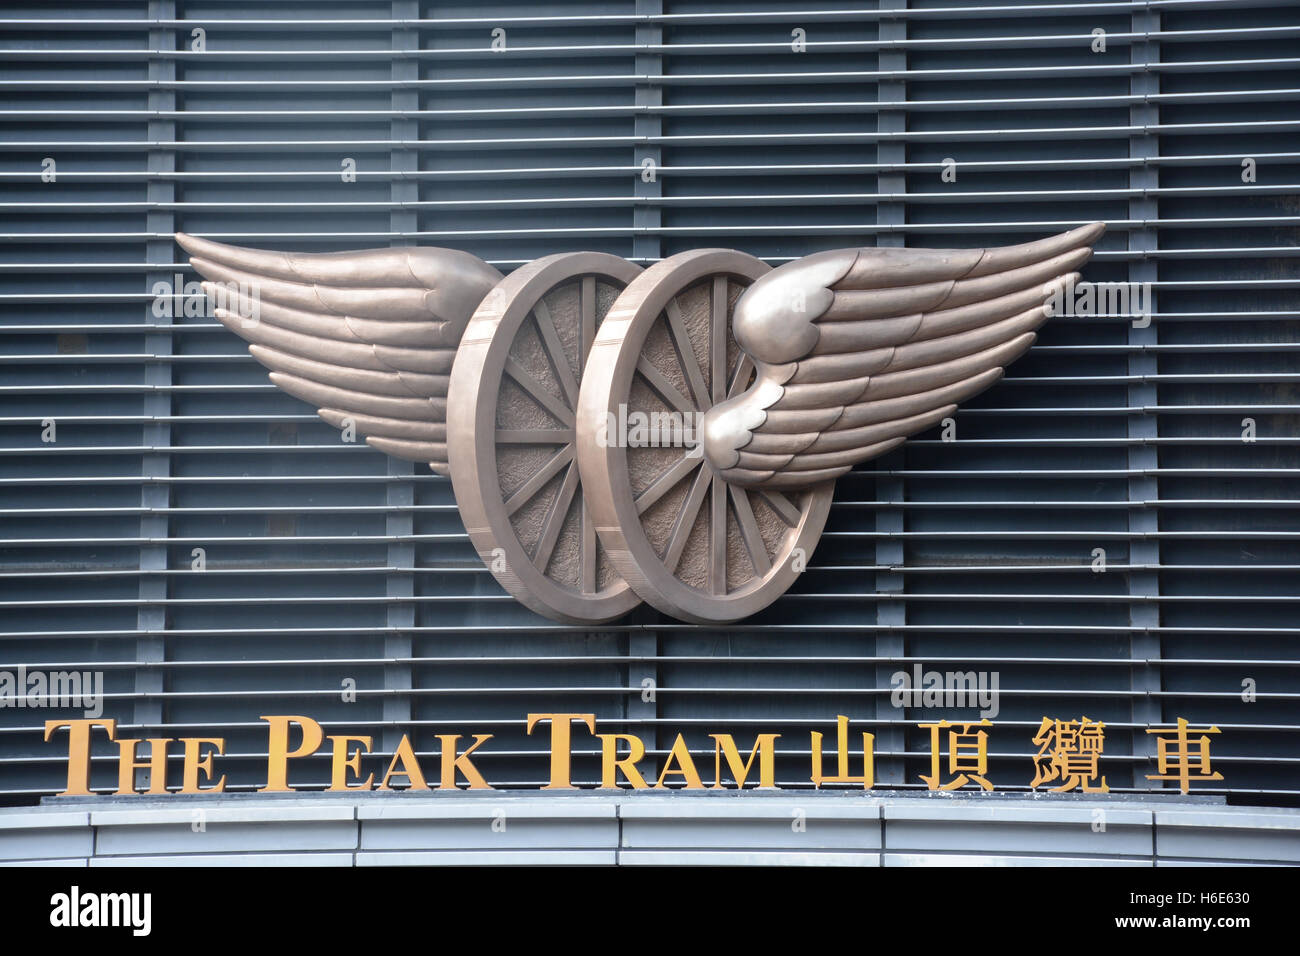 The Peak Tram station Honk Kong island China - Stock Image